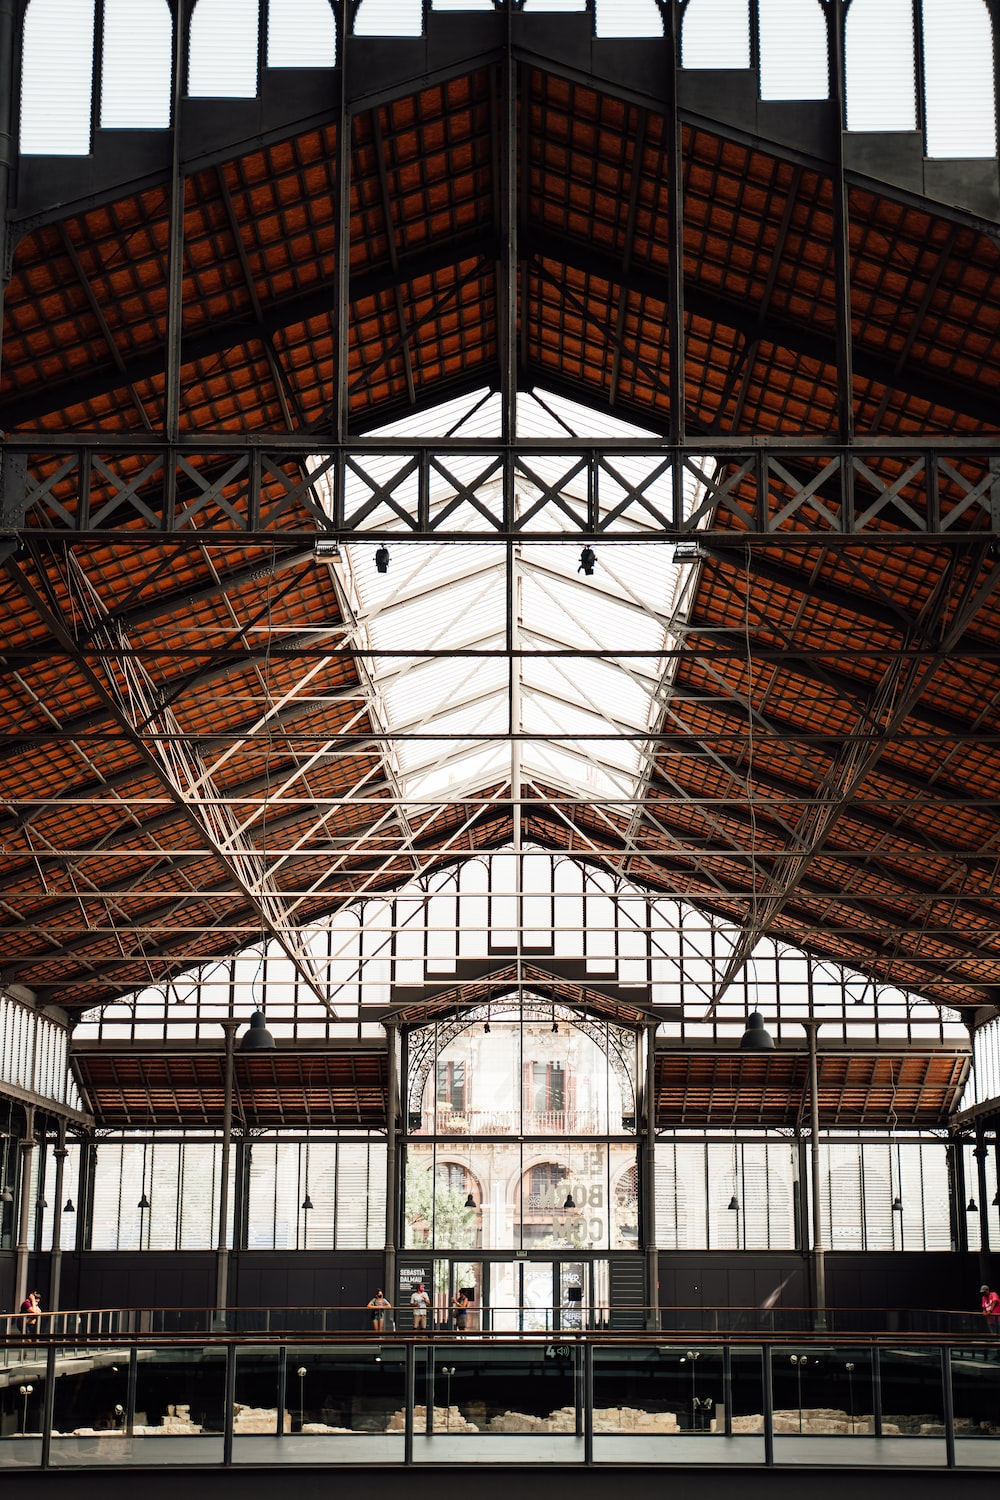 brown wooden ceiling with glass windows